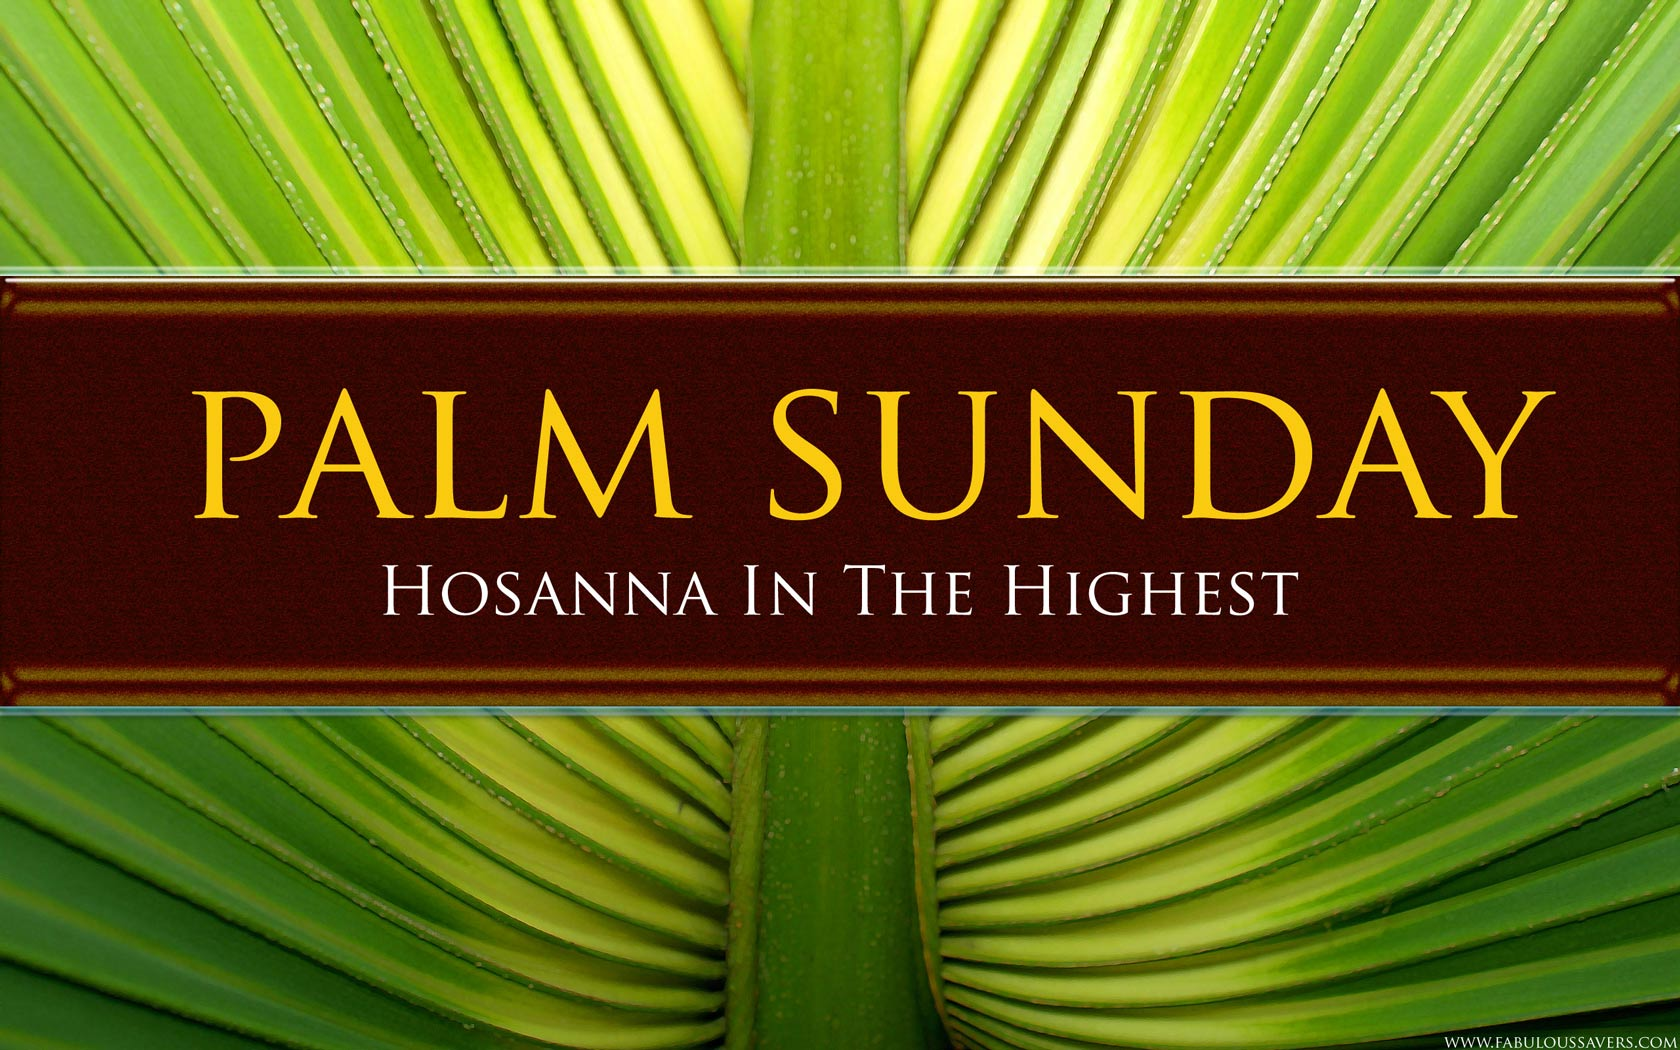 Palm_Sunday2014_freecomputerdesktopwallpaper_1680